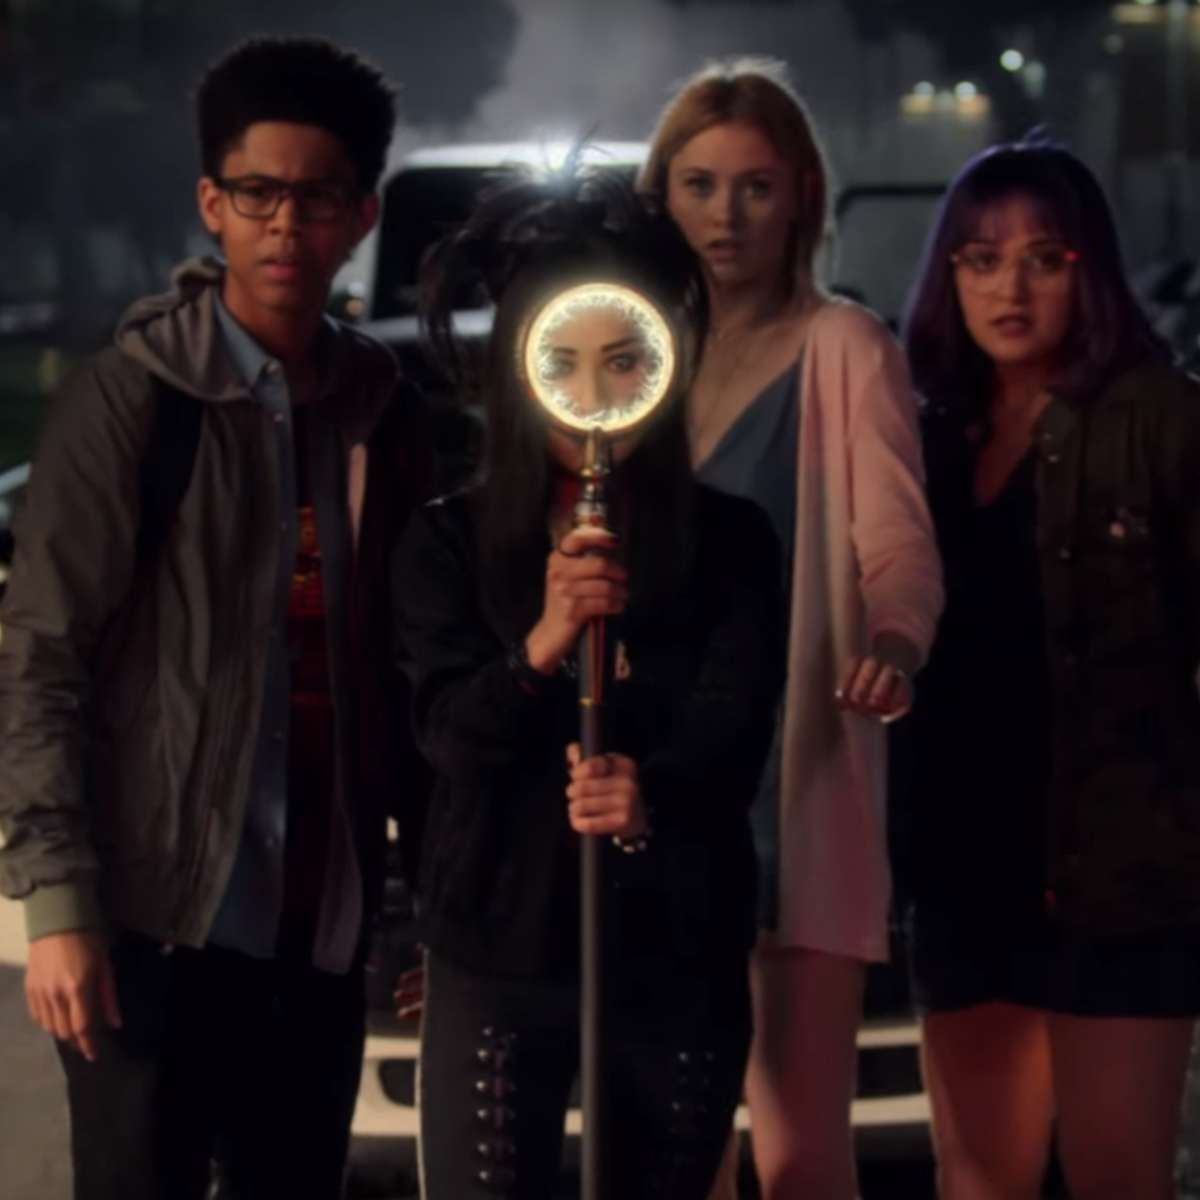 runaways-trailer2-screengrab-syfywire.png